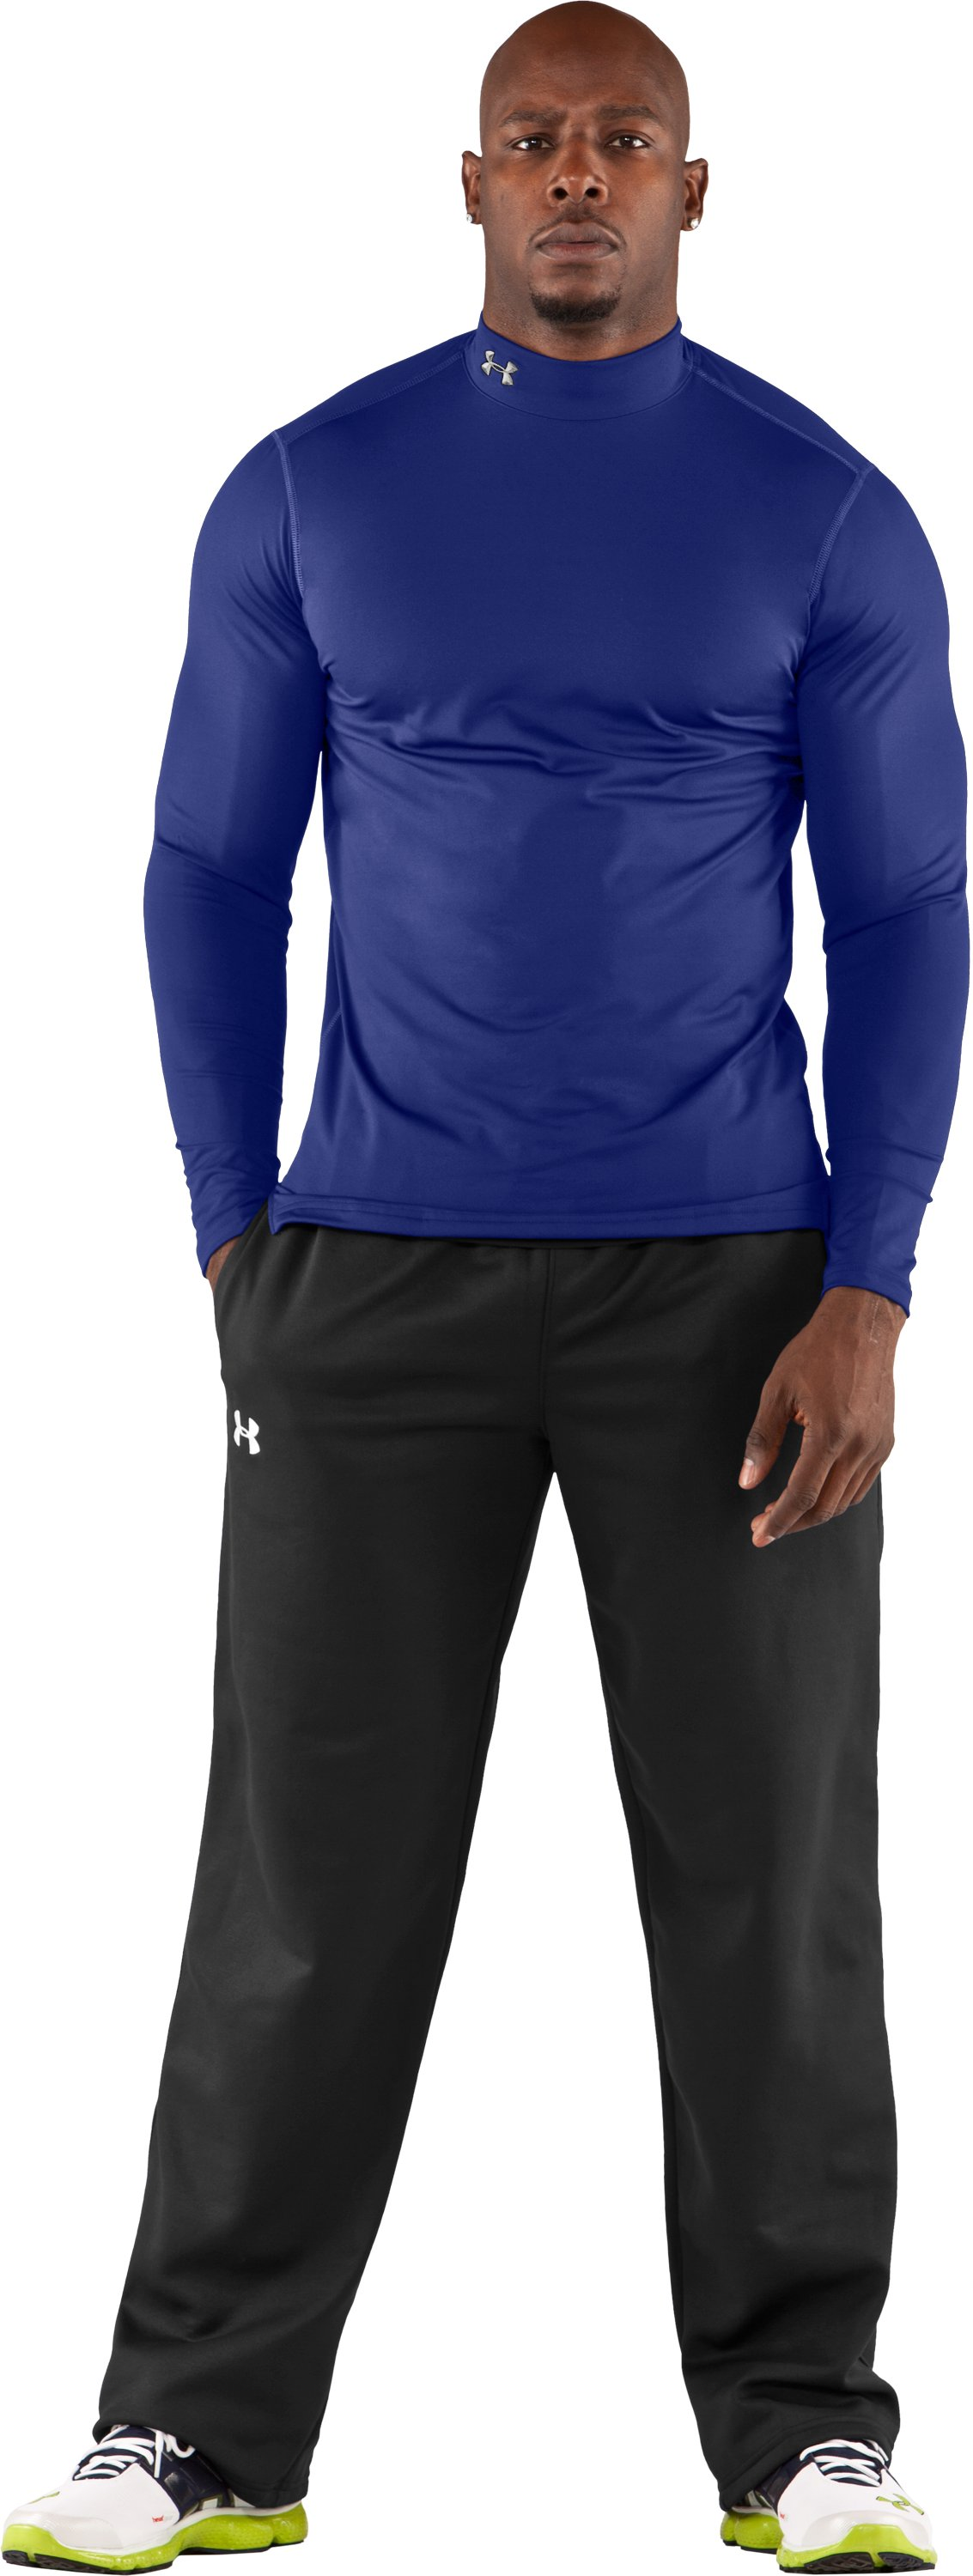 Men's ColdGear® Fitted Long Sleeve Mock, Royal, zoomed image